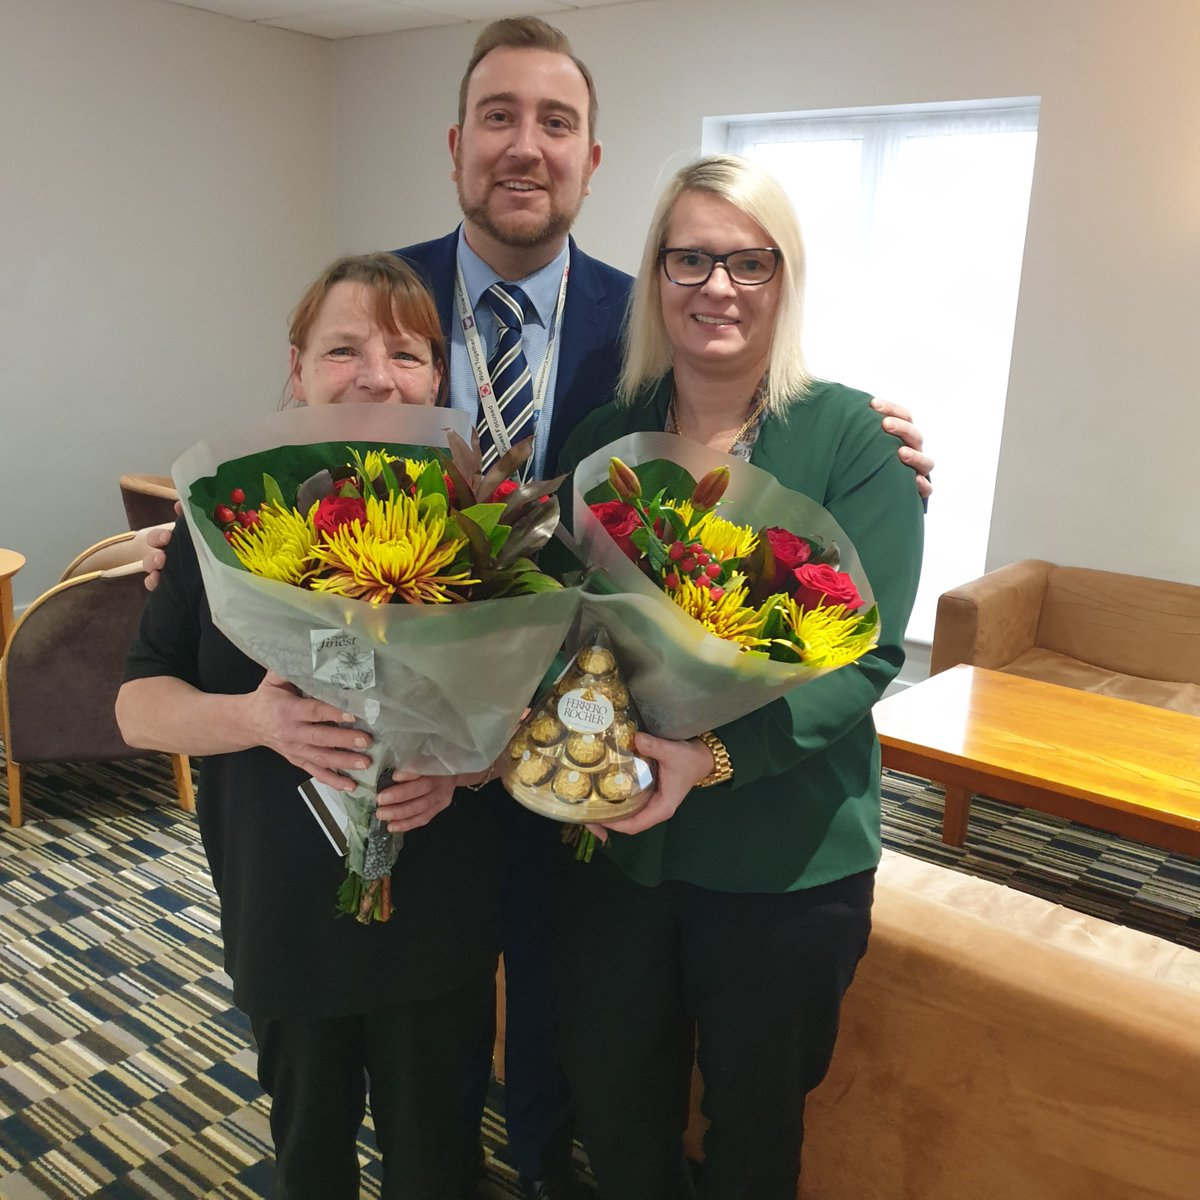 Well done to Magdalena Makowska and Joyce Tweedale at the HI Express Manchester East for receiving an appreciation gift from the GM for improved guest scores!  #Housekeeping #Hotels #OneBestWay #WGC #Team #LoveToClean  #HotelHousekeepingpic.twitter.com/eEMnDfsUtN